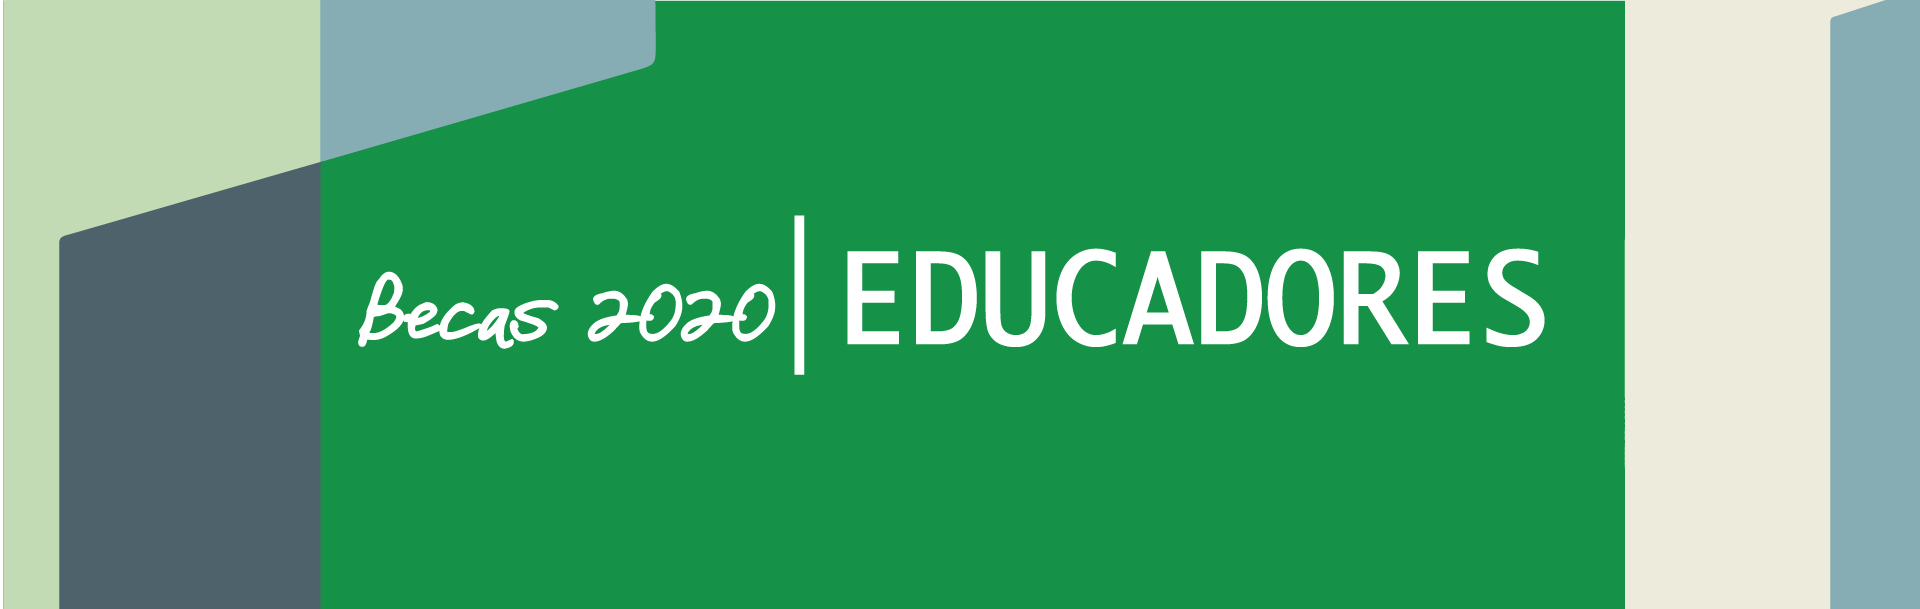 BANNERS_BECAS_07